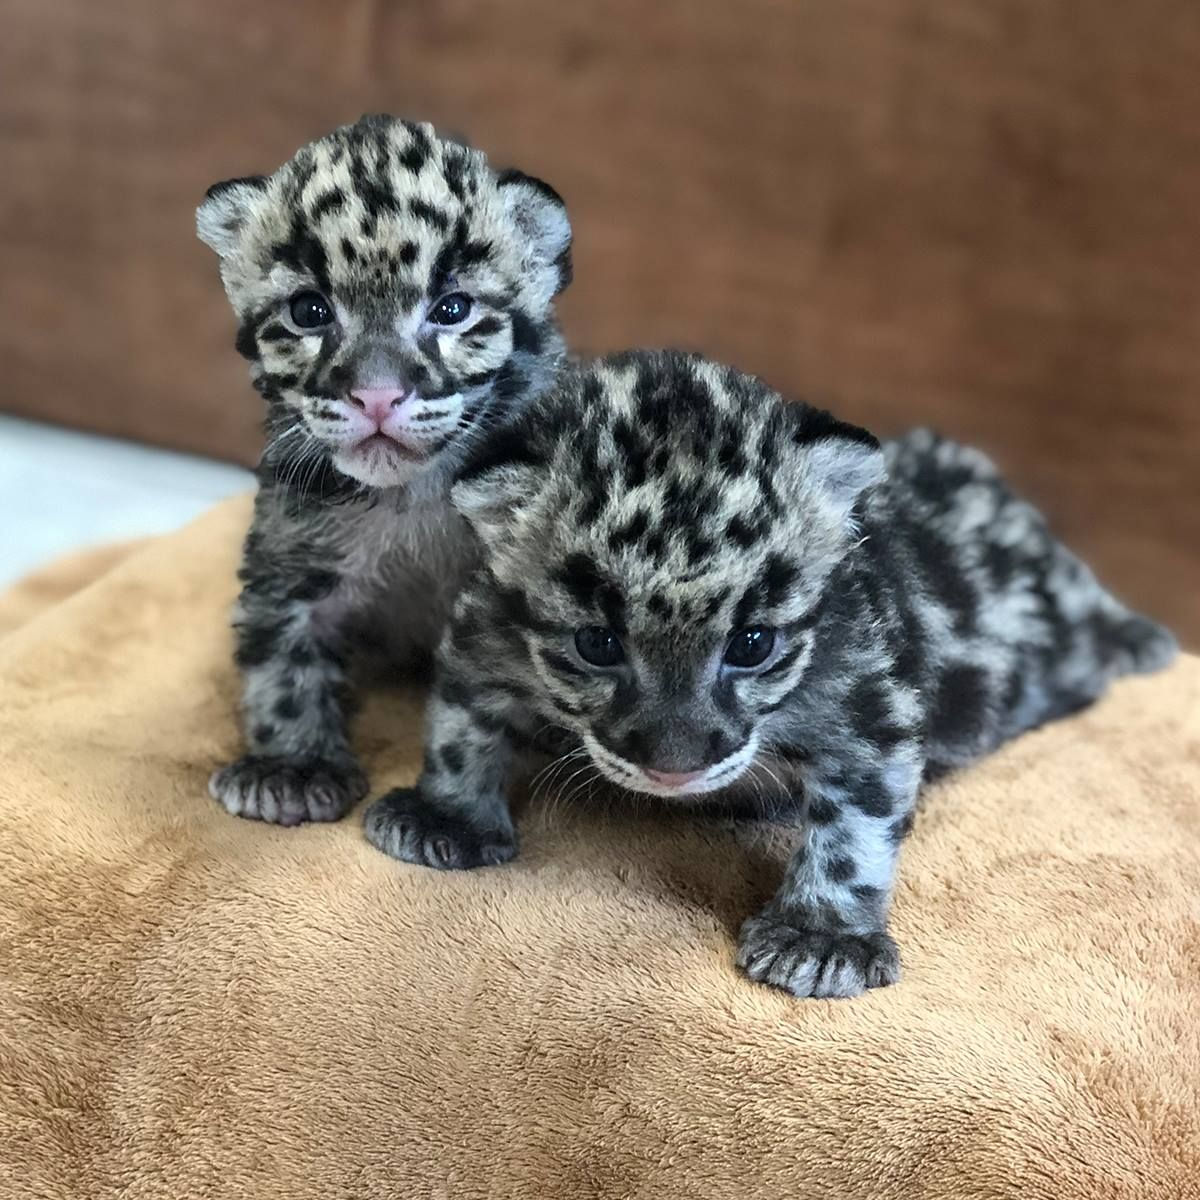 Brand new babies... Columbus zoo, Clouded leopard, Animals